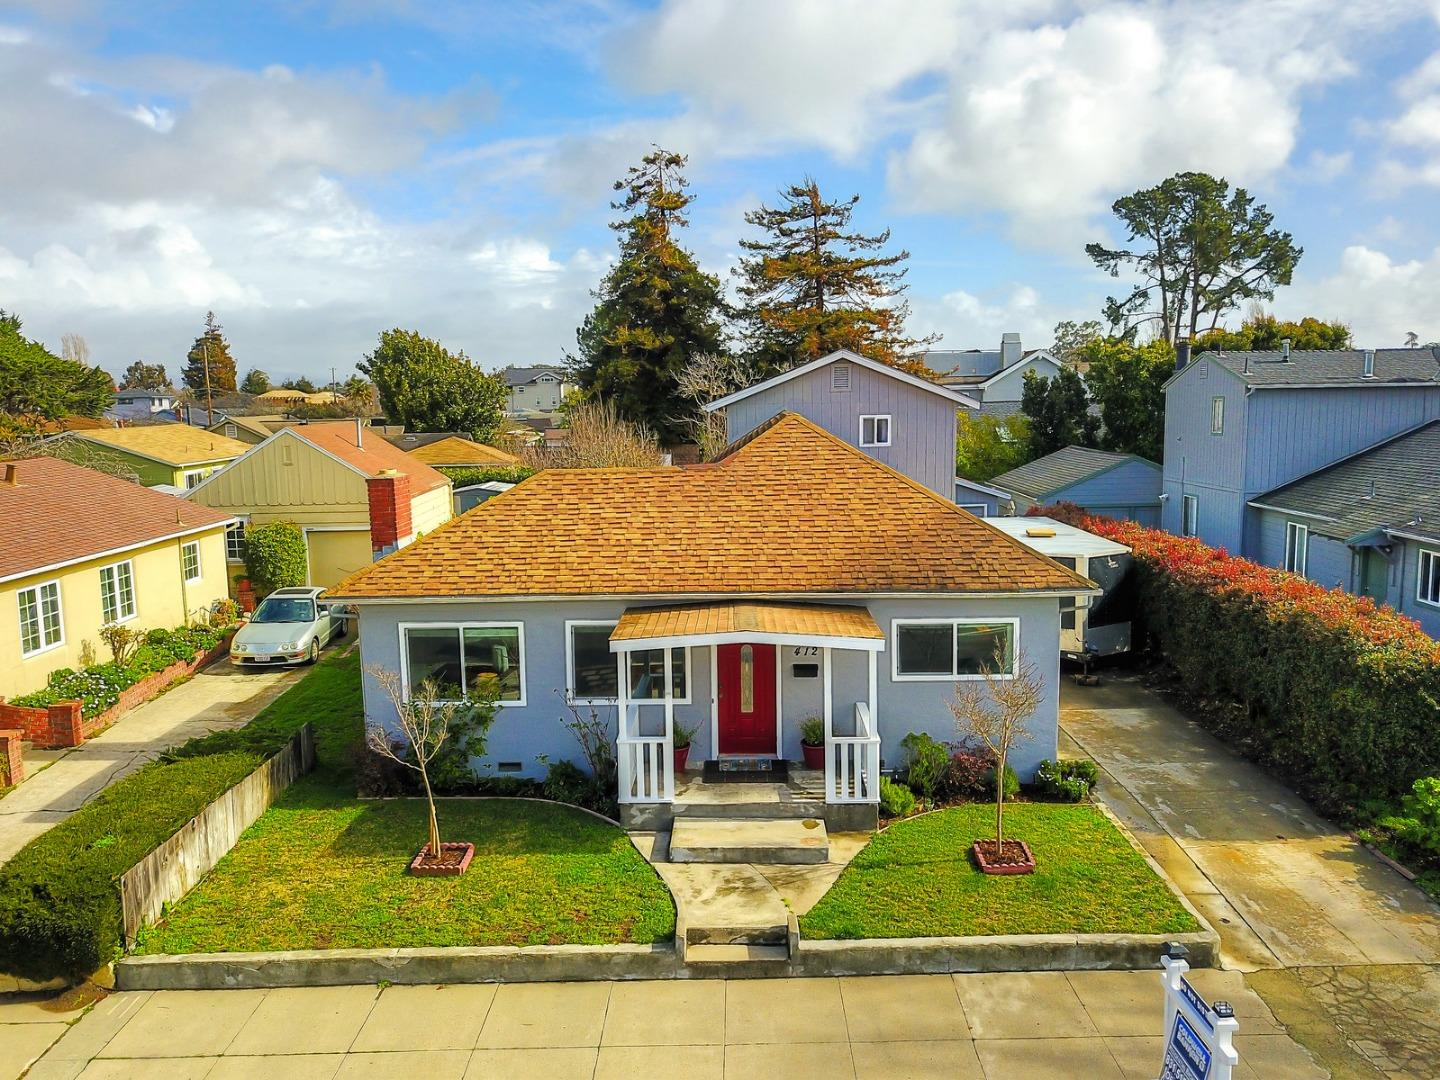 Opportunity knocks at a red door in this beautiful two story home. With 2,079 Sq.Ft. of living space on a 5,489 Sq.Ft. lot, this move in ready gem has 3 bedrooms, 2 full baths, a bonus room and a 2 Car Garage. The spacious kitchen has been remodeled to include custom cabinets, stainless appliances and skylights to give this beach home a modern feel. The stone fireplace and new carpets/flooring throughout are complimented by dual pane windows, in addition to the updated bathrooms and Tankless water heater. A covered Patio with a wood deck and a fire pit make the large private backyard perfect for entertaining. You are only blocks away from the ocean, which offers a 3 mile ocean-side path along W Cliff. Giving you access to a short walk or bike ride away to the world famous Santa Cruz Boardwalk, Steamers Lane surf spot, and the Lighthouse Field Park and Natural Bridges State Park. Location is EVERYTHING and this home provides that and so much more!